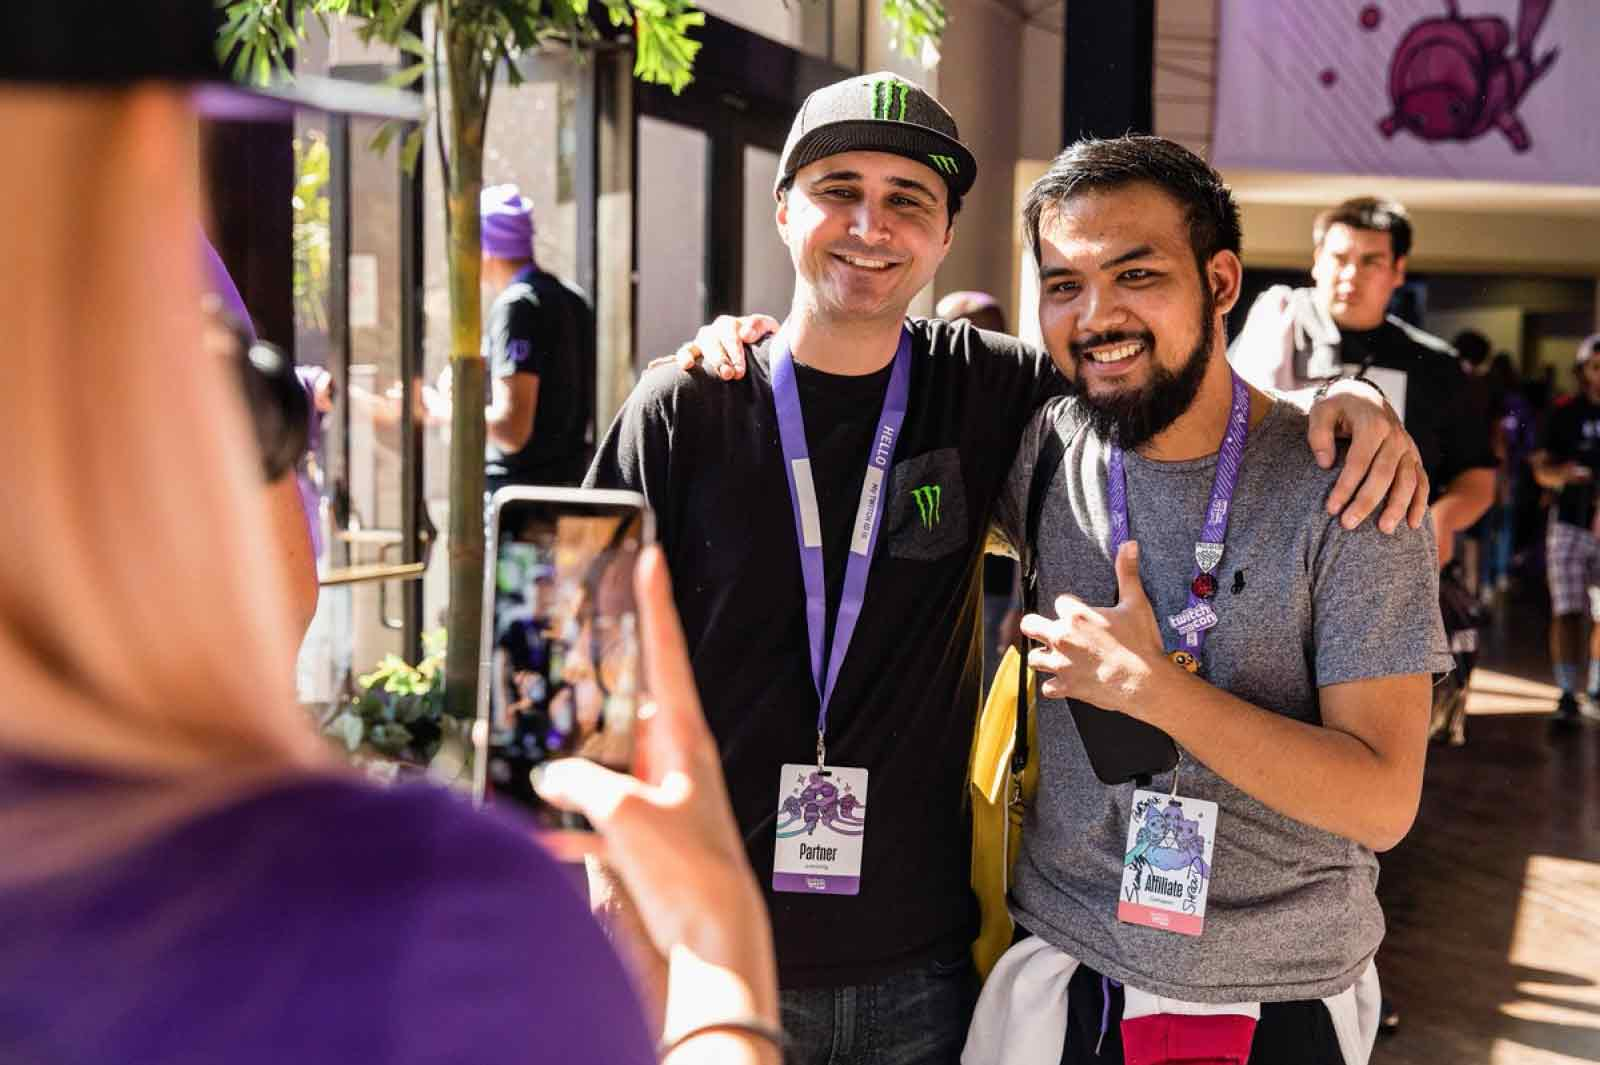 Two TwitchCon attendees pose together for a picture.